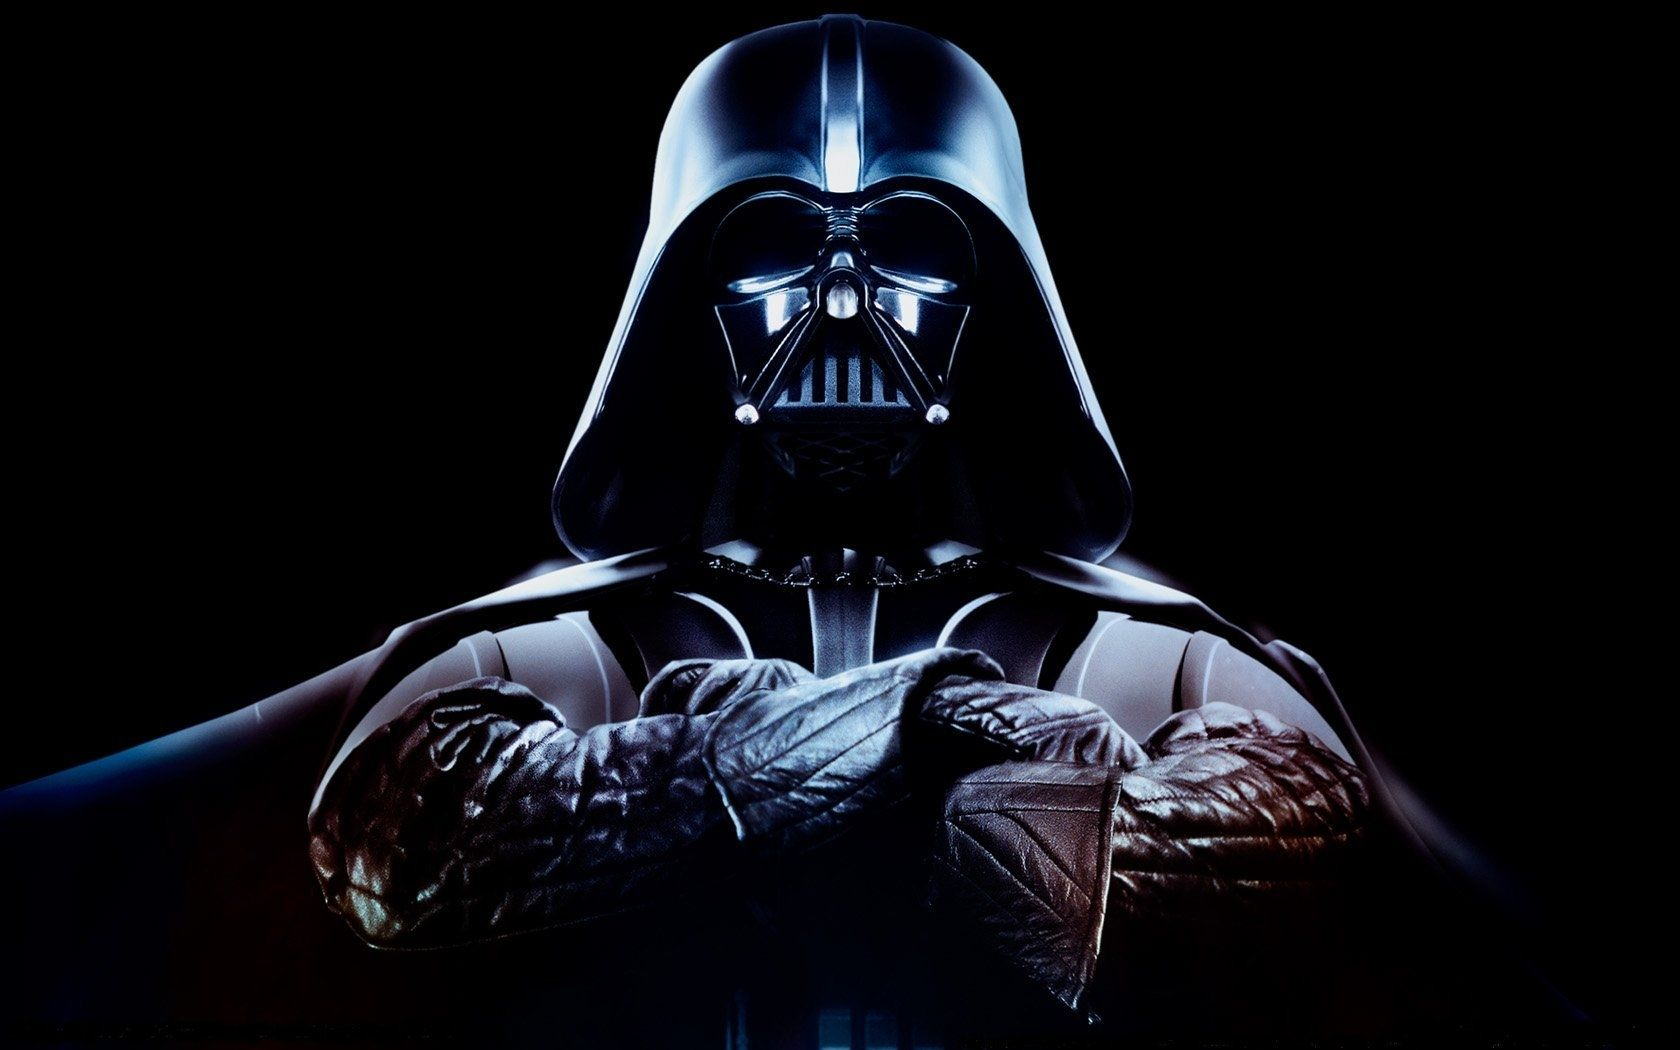 10 Best Darth Vader Wallpaper Hd Full Hd 1080p For Pc Background Darth Vader Wallpaper Star Wars Art Vader Star Wars